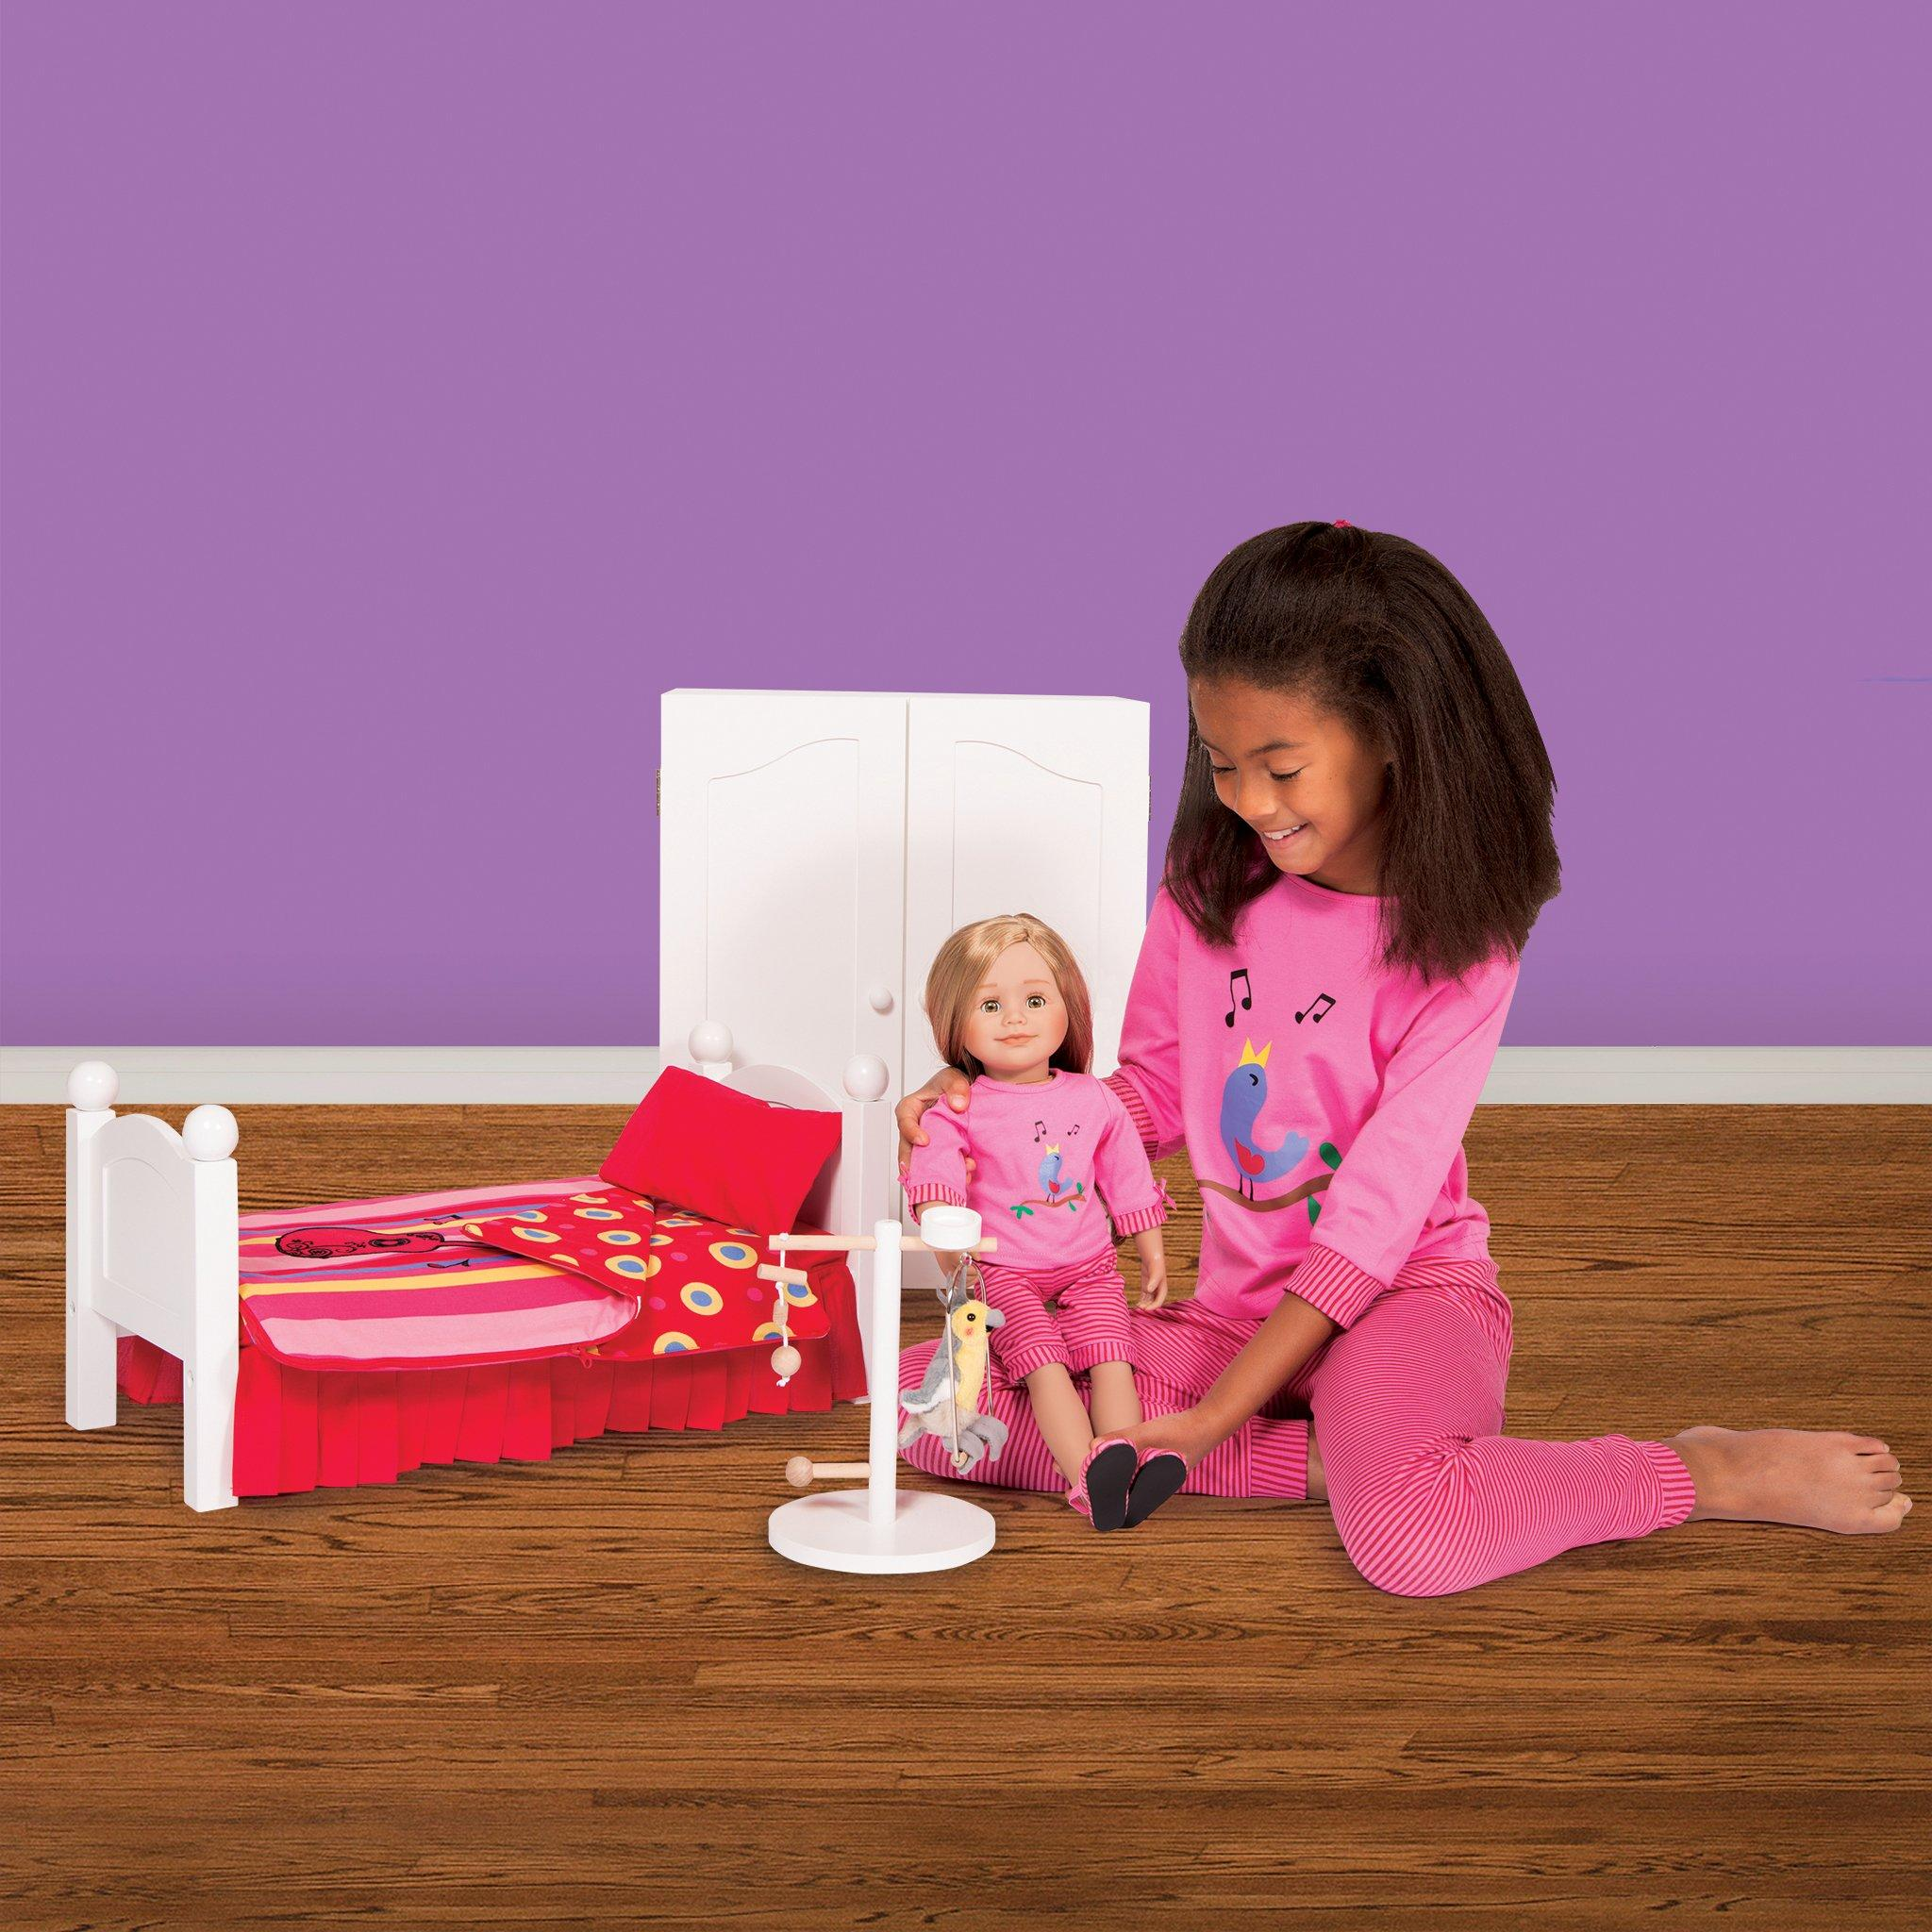 Pink Nightengale Nightwear PJs on girl with 18 inch doll wearing matching pajamas from Maplelea.